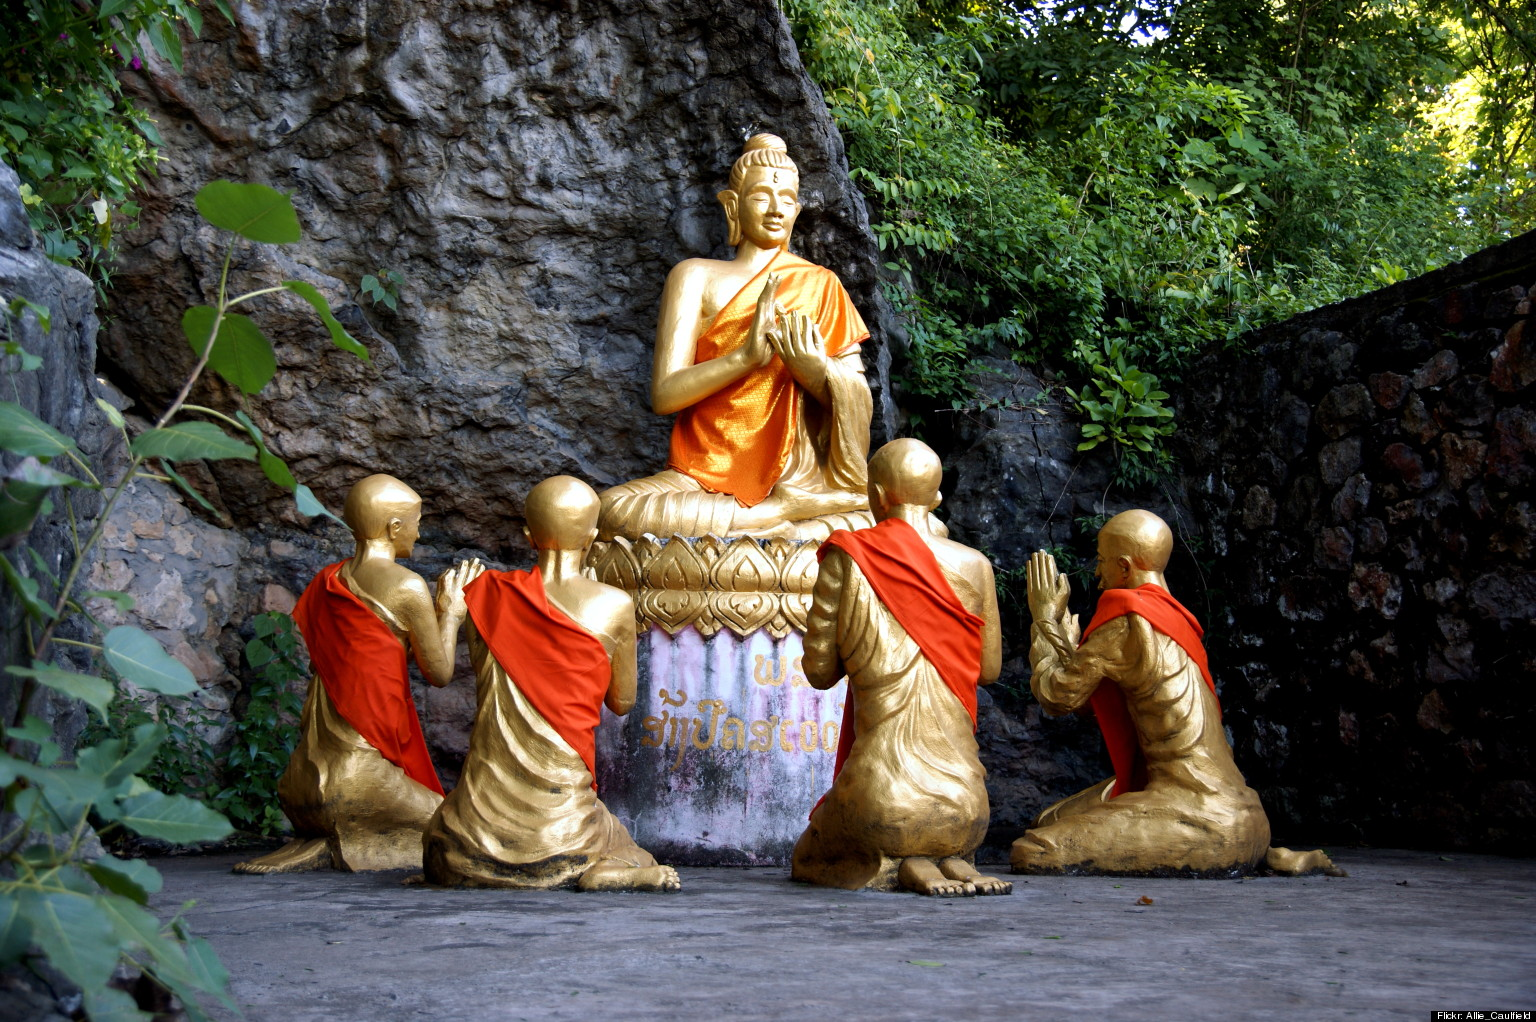 rowesville buddhist personals Buddhist dating online is a sure-shot way of finding the person that can really complete you there are no trials and errors when it comes to buddhist chat rooms online in all, if you're buddhist single and are ready to mingle on a personal and spiritual level, nothing can beat online buddhist chat rooms.